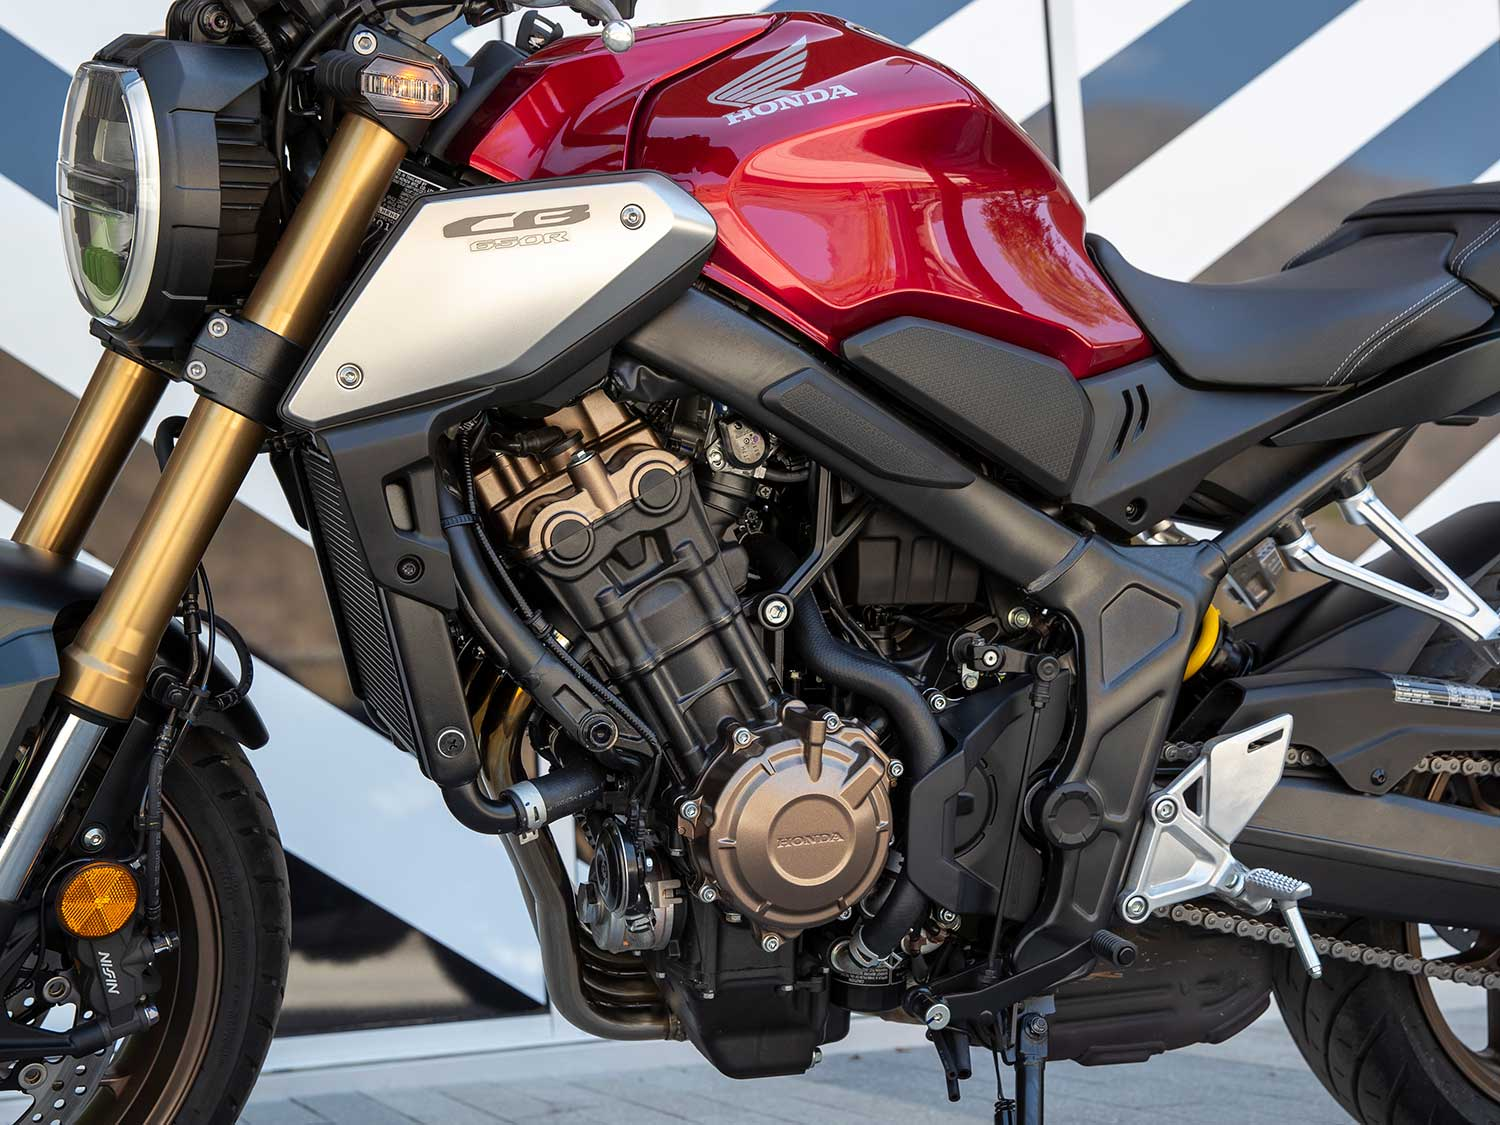 2019 Honda CB650R First Ride | Cycle World